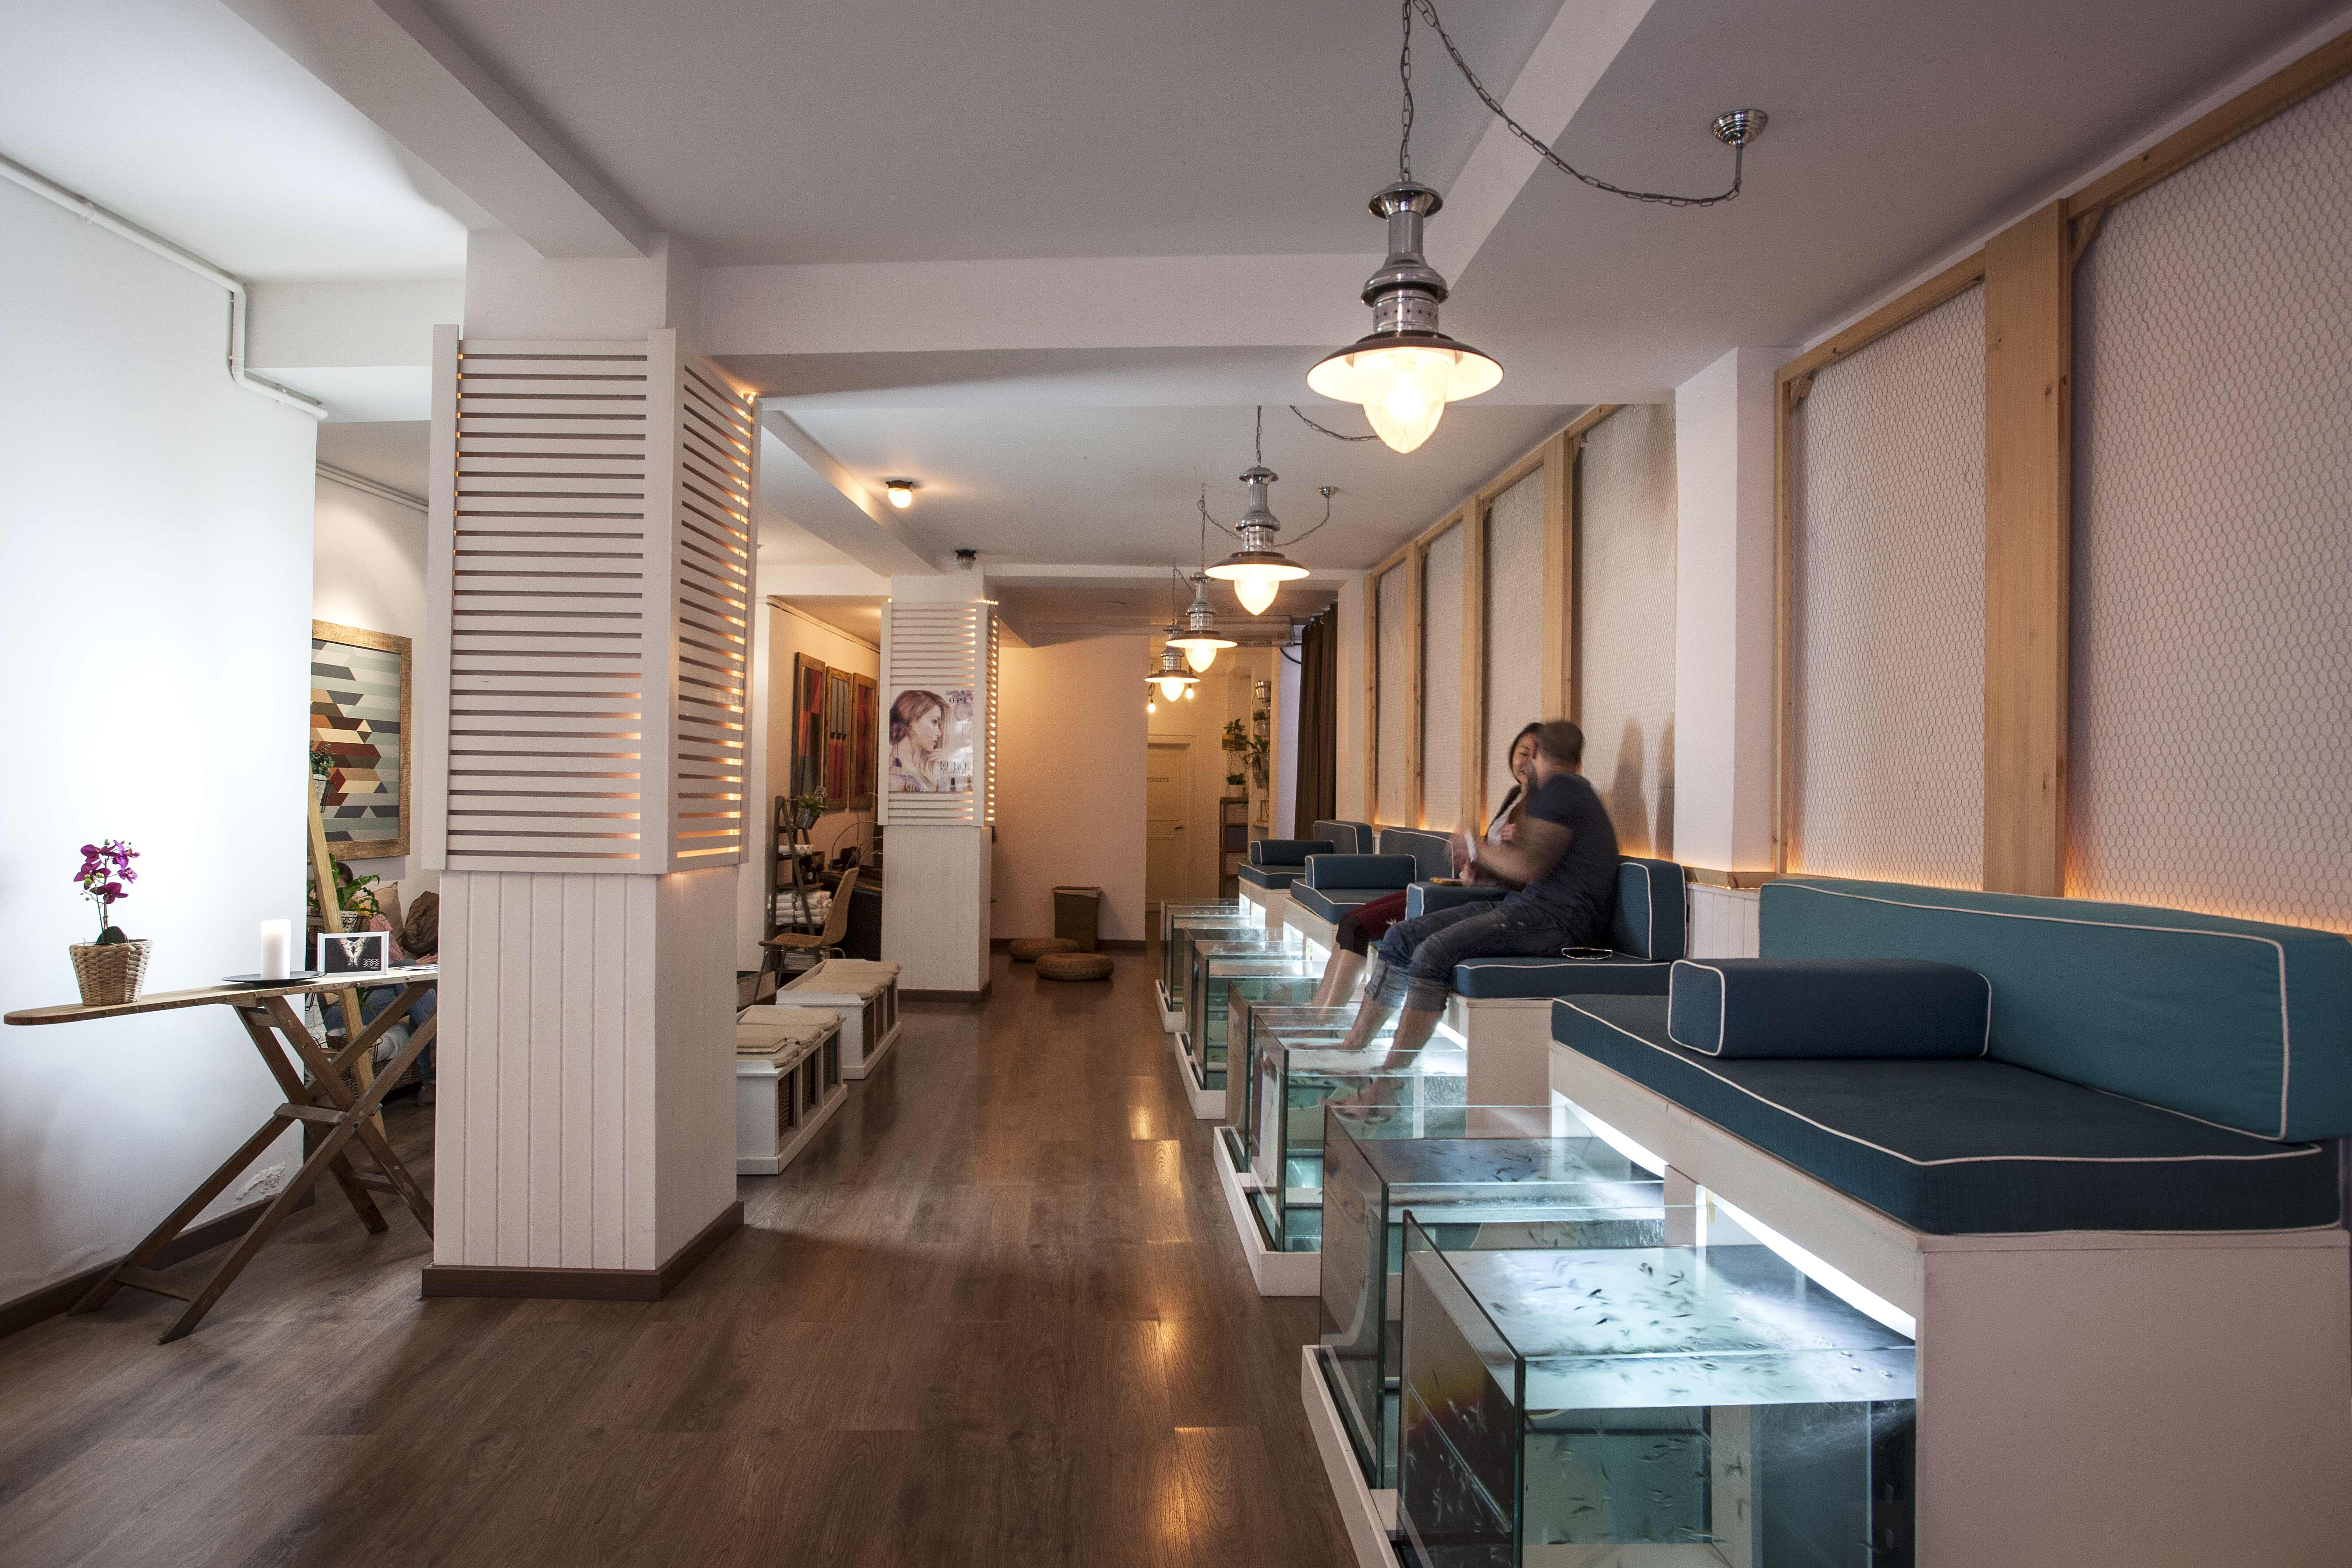 Спа-центр в Барселоне AquaBliss Fish Spa